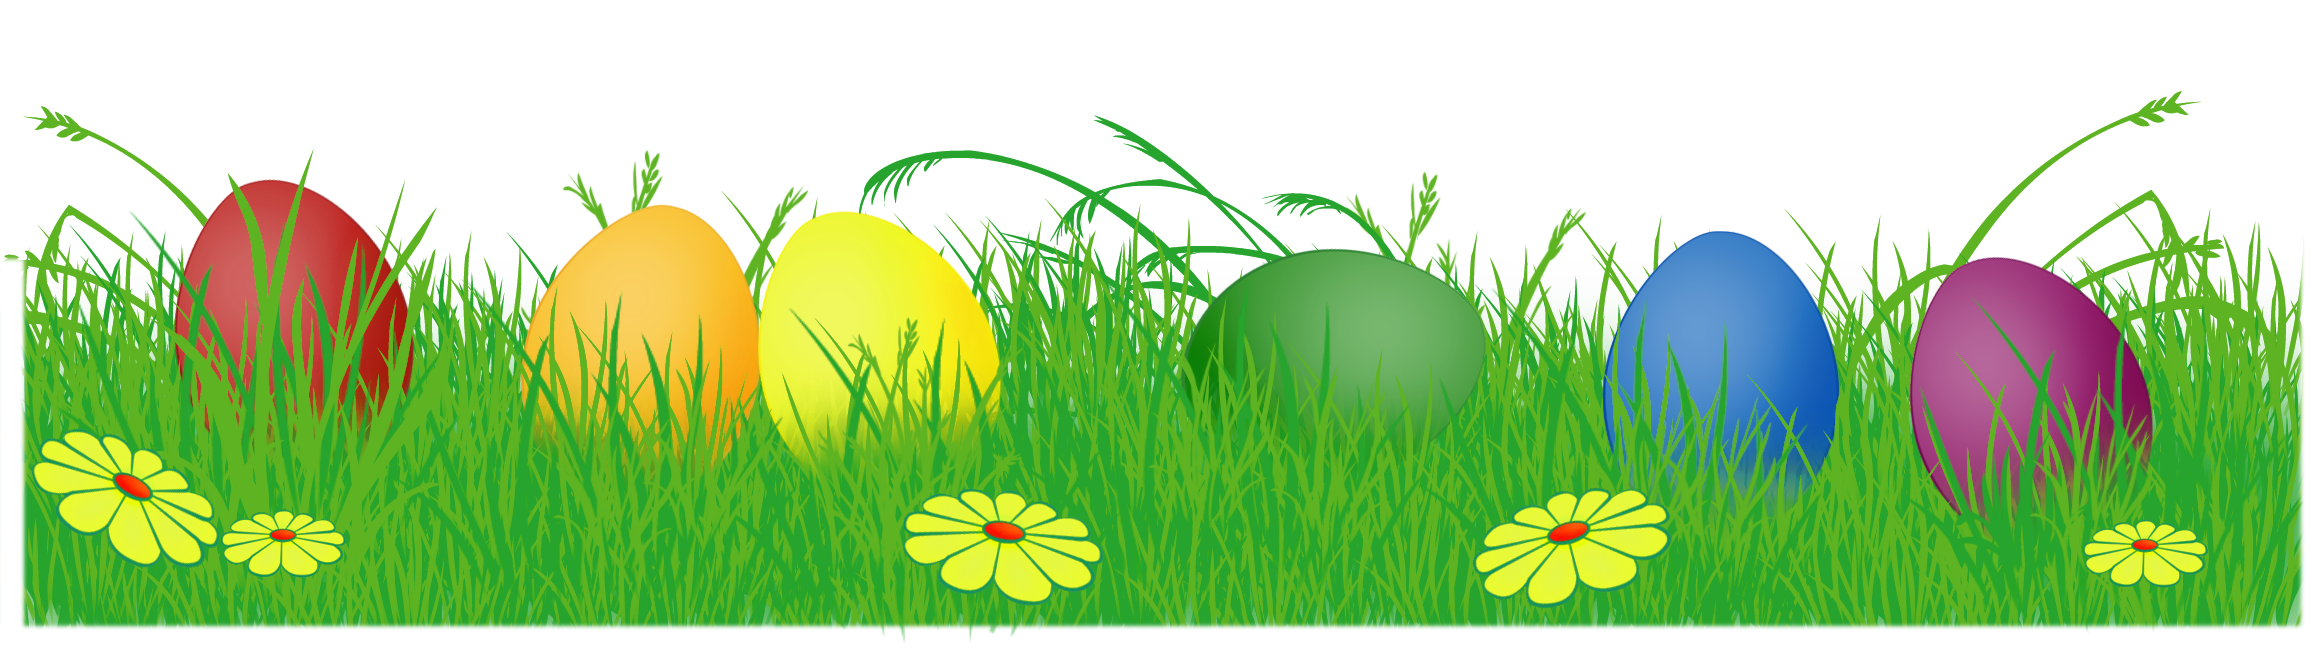 Easter egg border clipart clipart royalty free download Easter basket grass clipart - ClipartFest clipart royalty free download